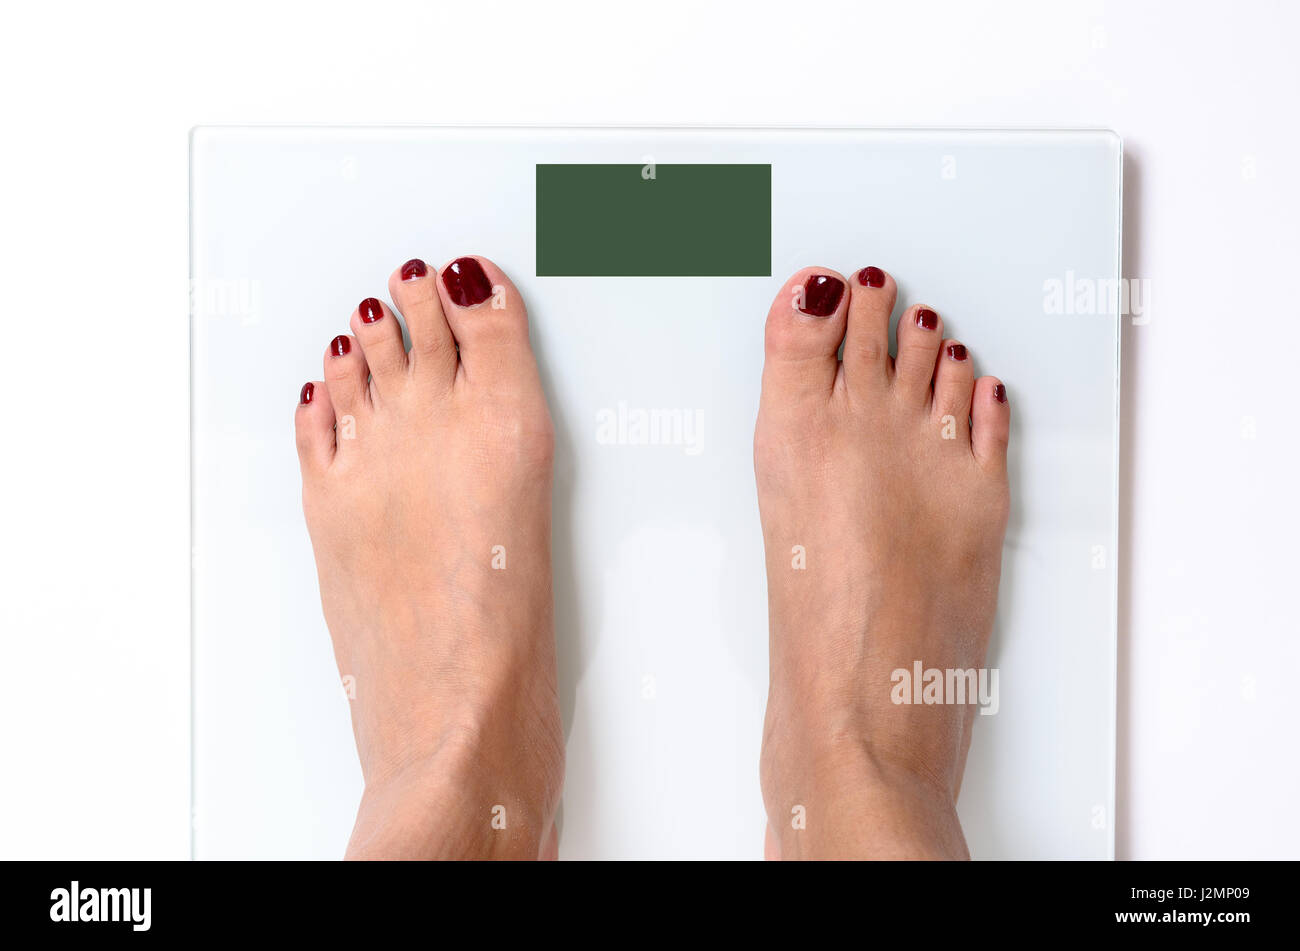 Feet On Scales Stock Photos Feet On Scales Stock Images